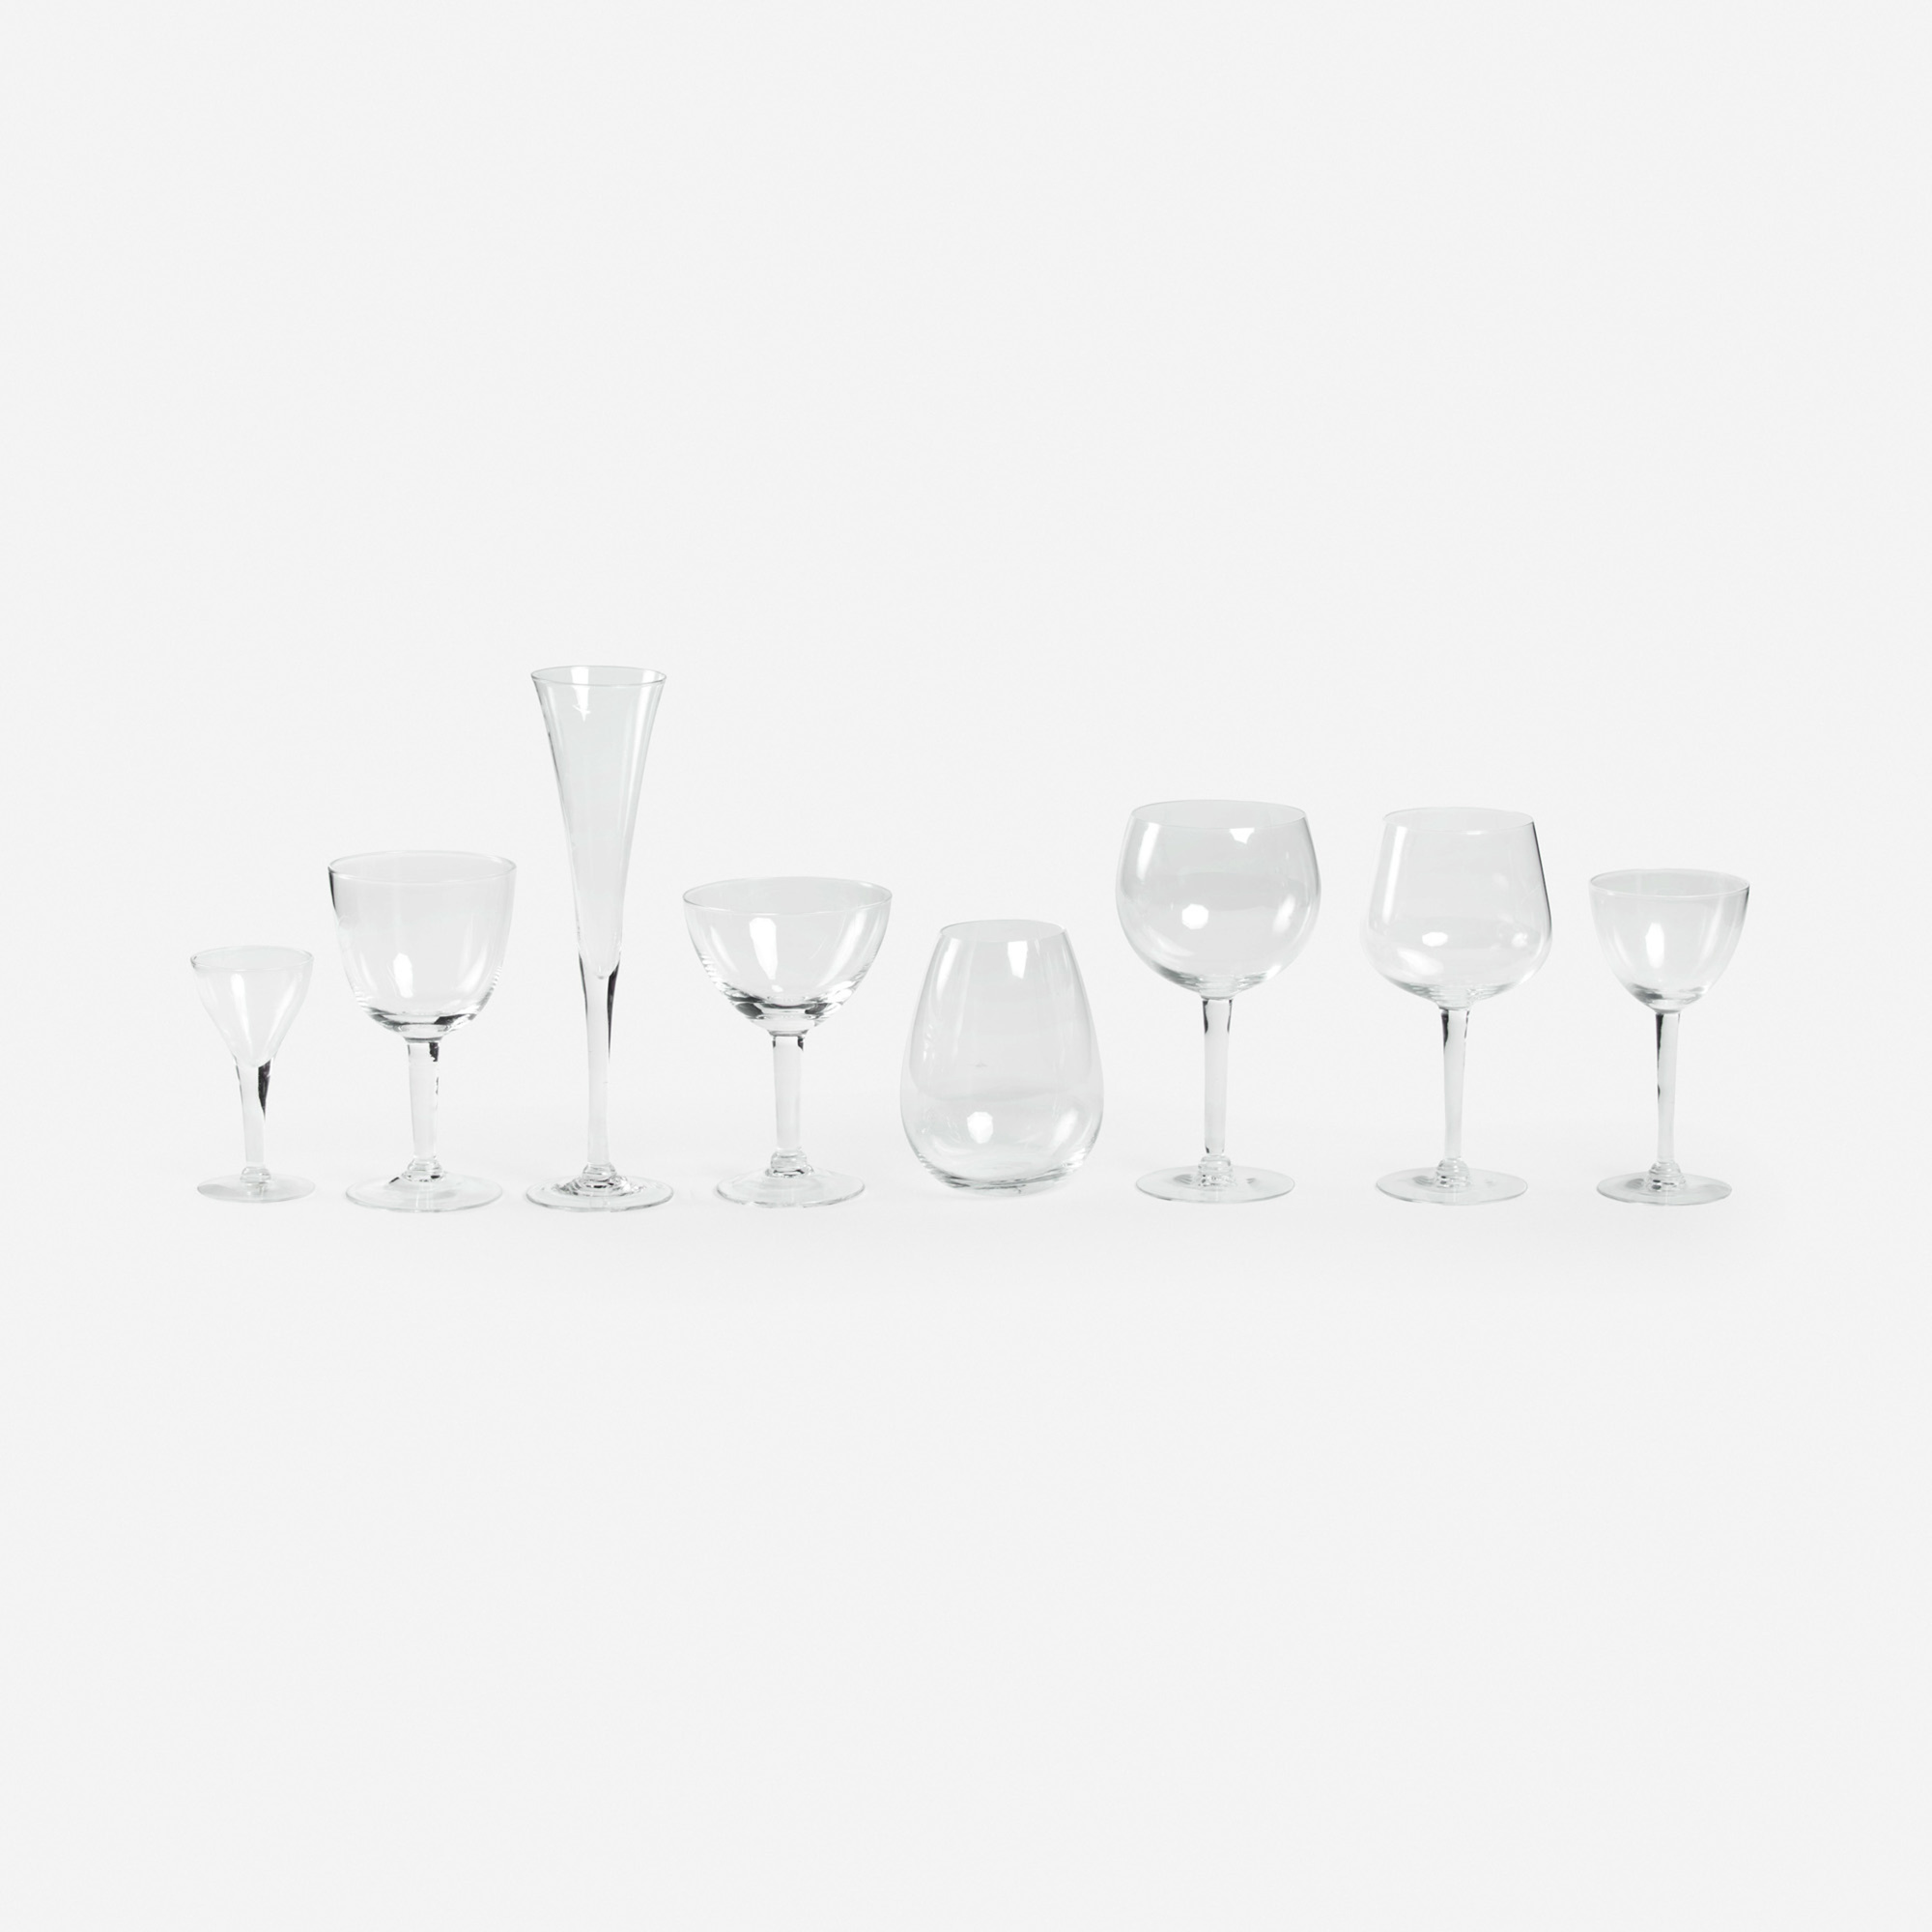 313: Garth and Ada Louise Huxtable / Stemware Collection from The Four Seasons, service for twelve (1 of 1)